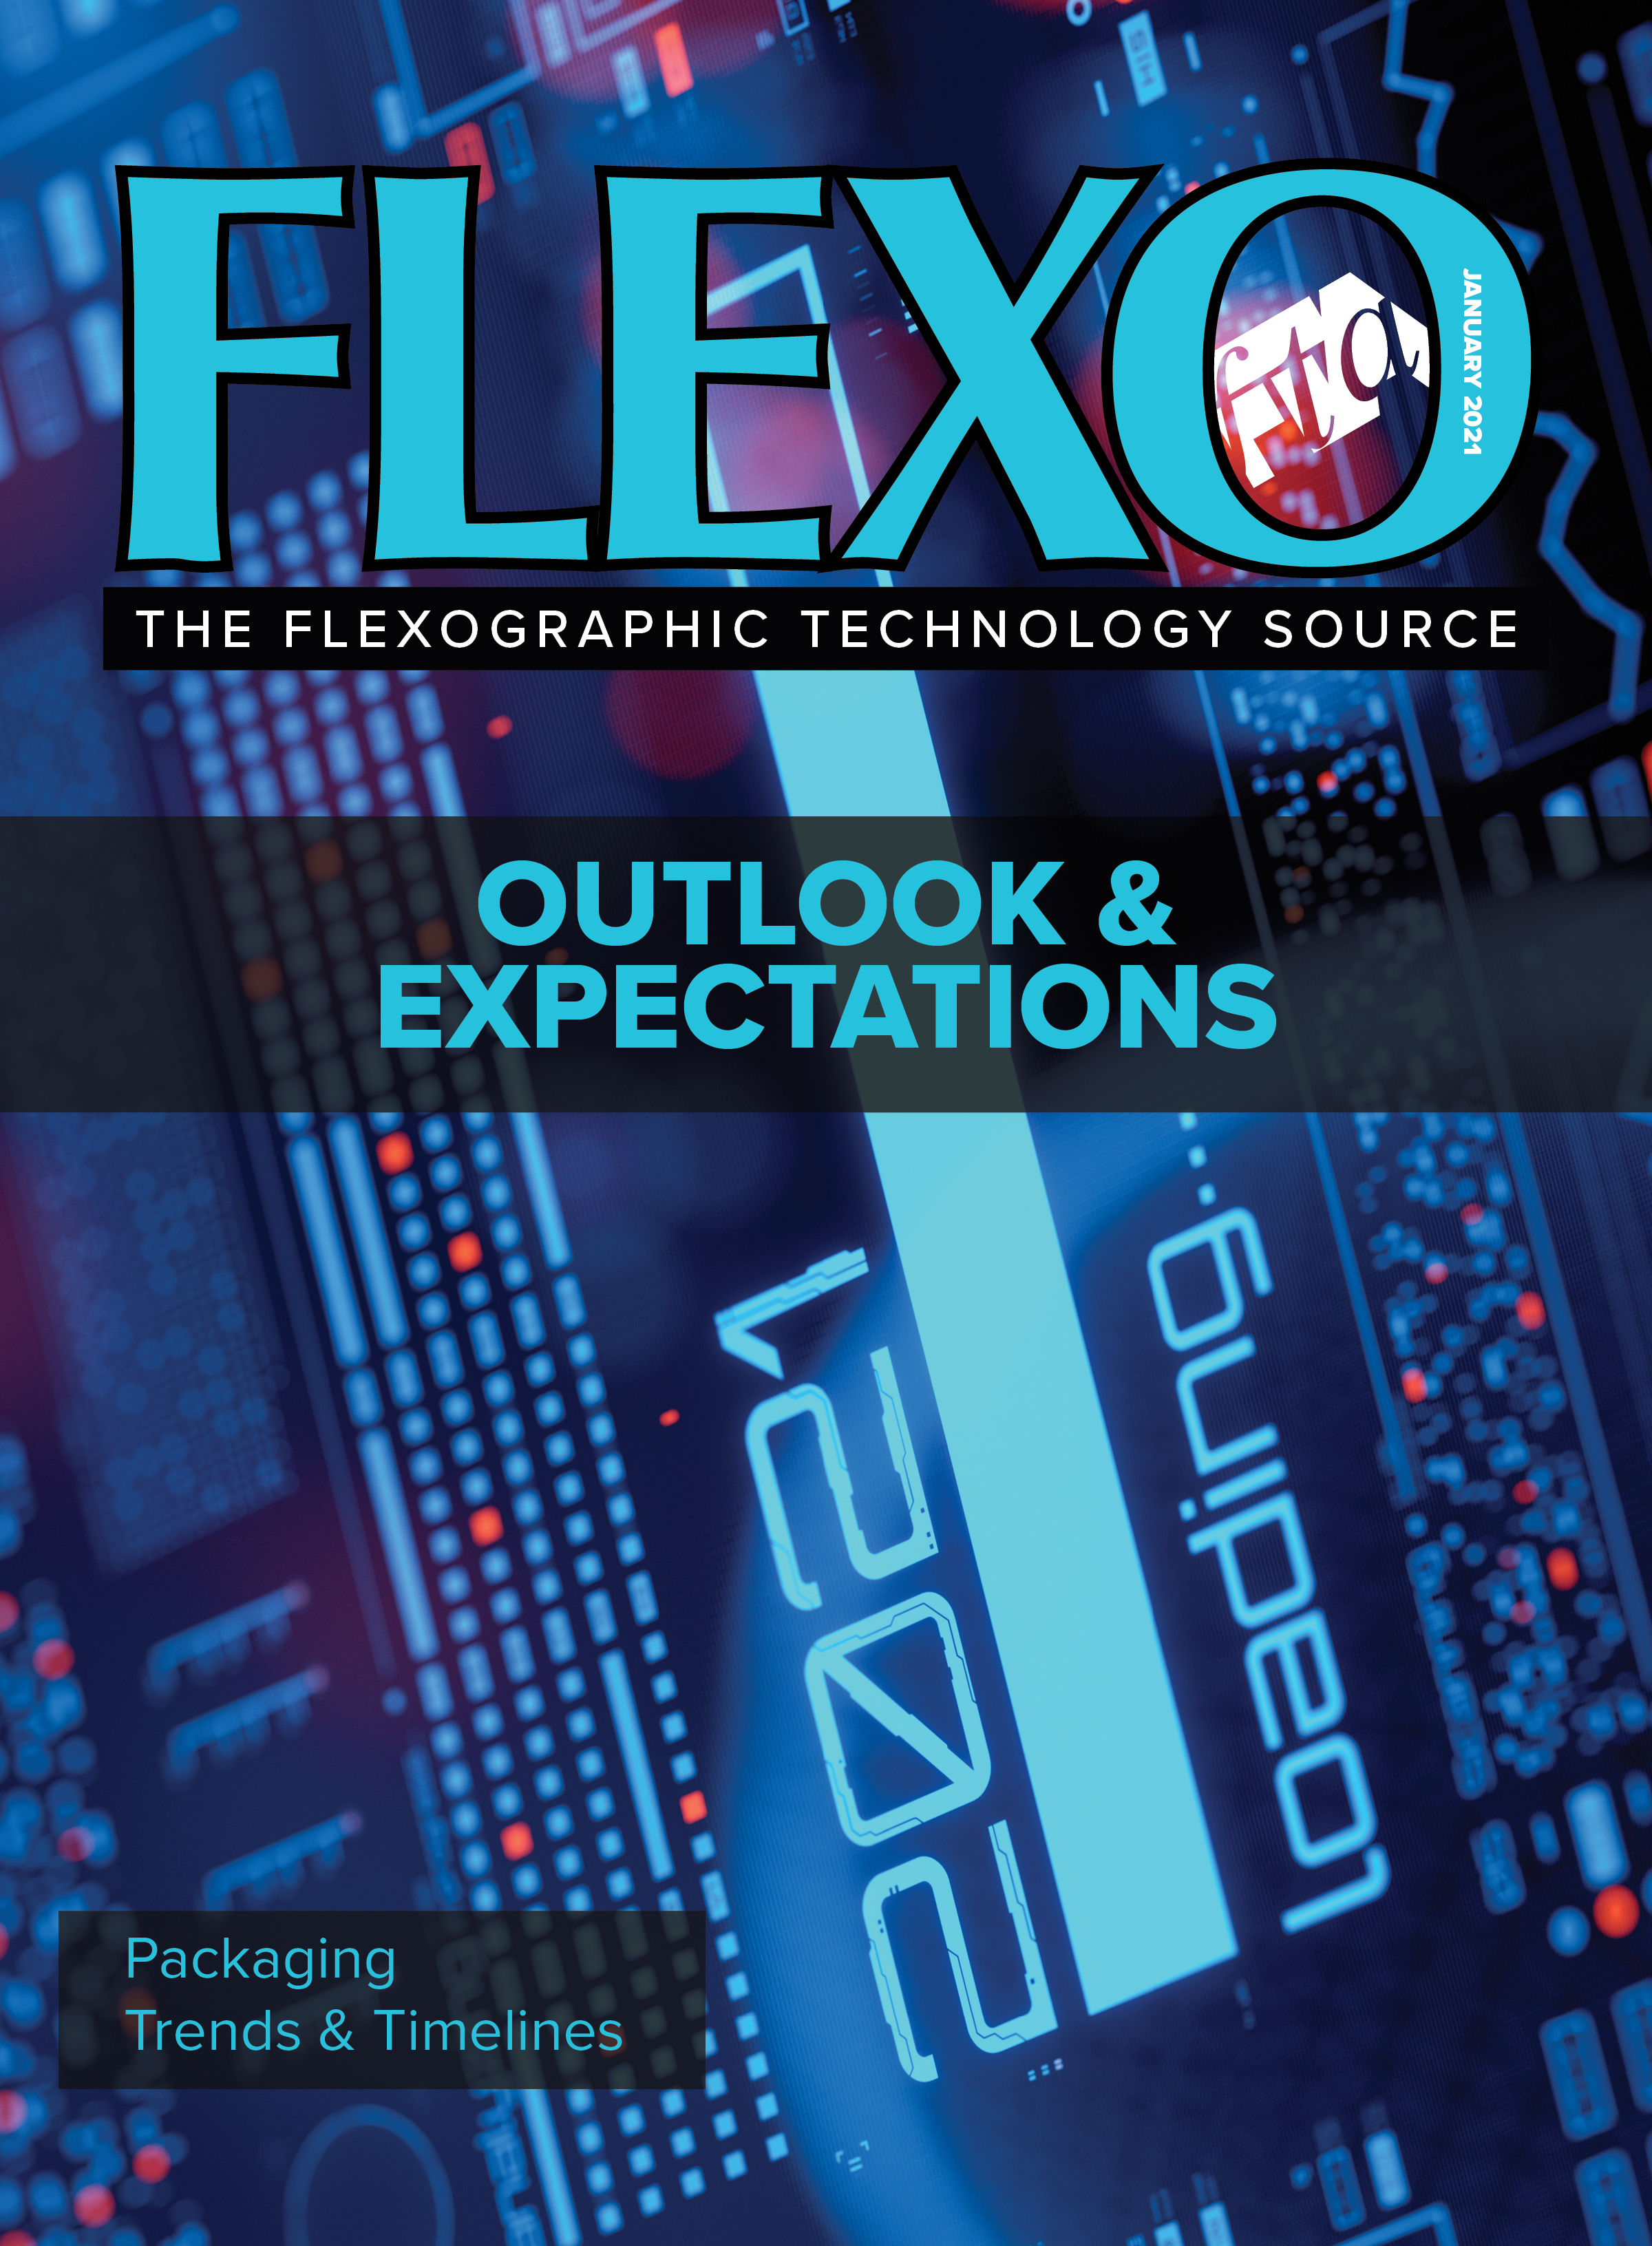 FLEXO Magazine January 2021 cover